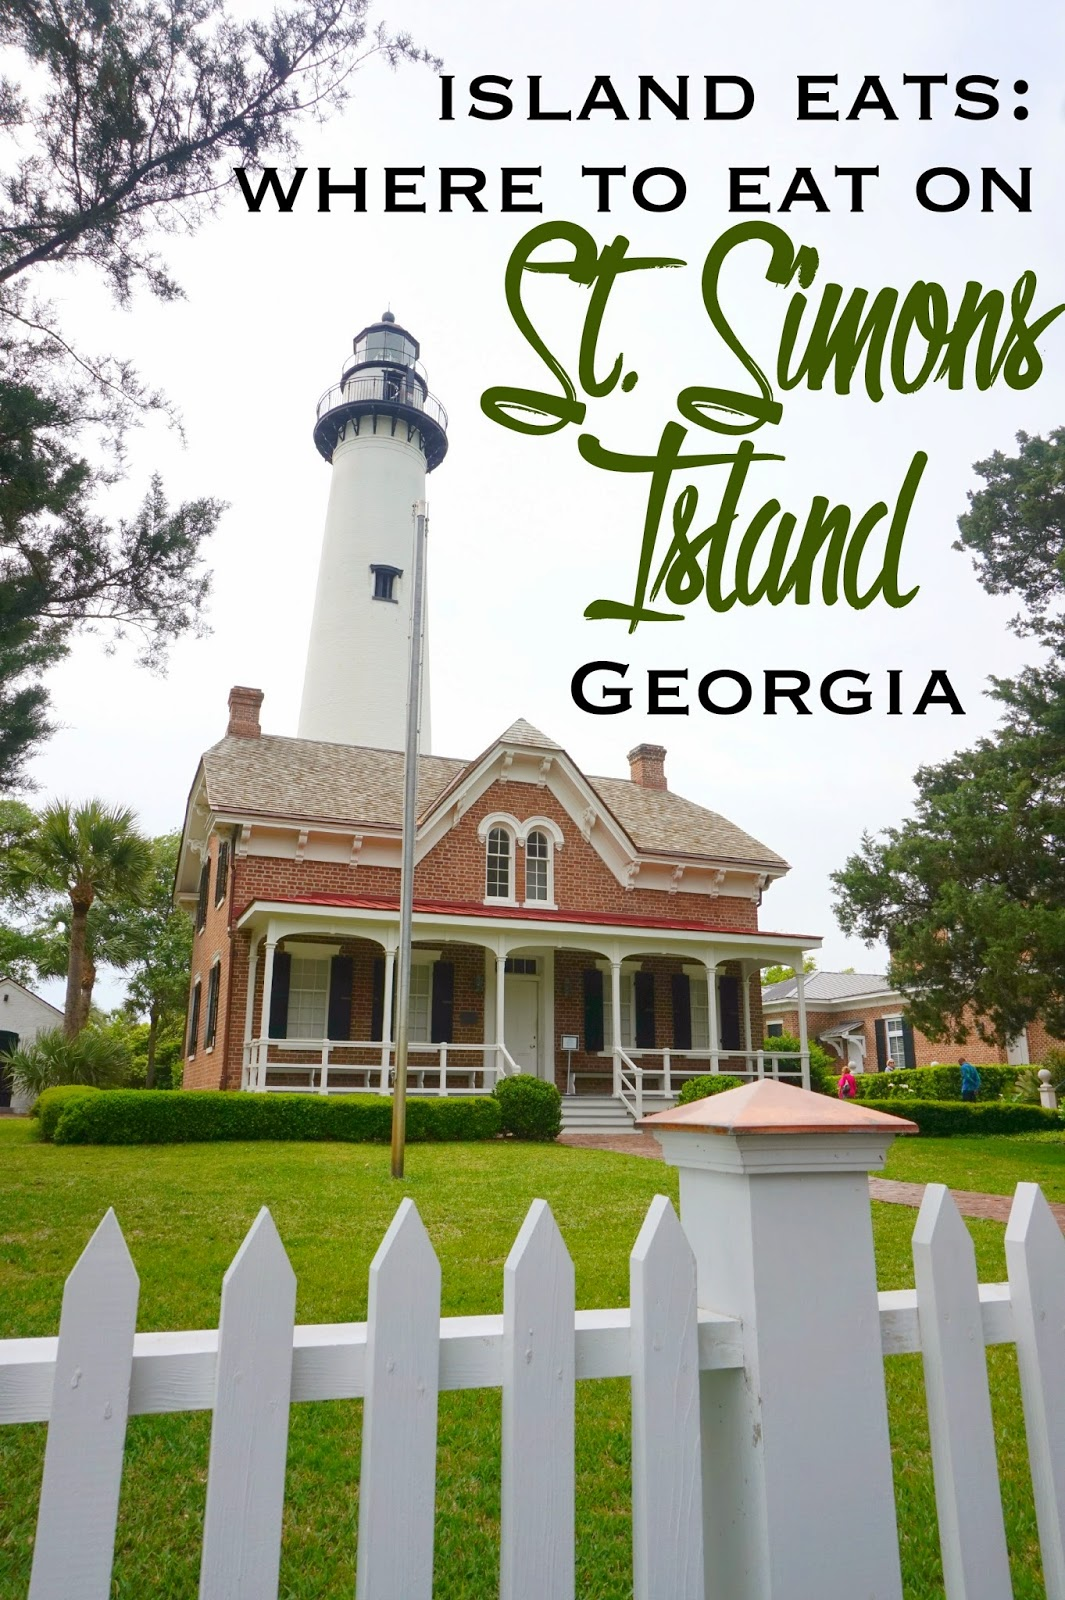 Island Eats: Where to Eat on St. Simons Island, Georgia | CosmosMariners.com